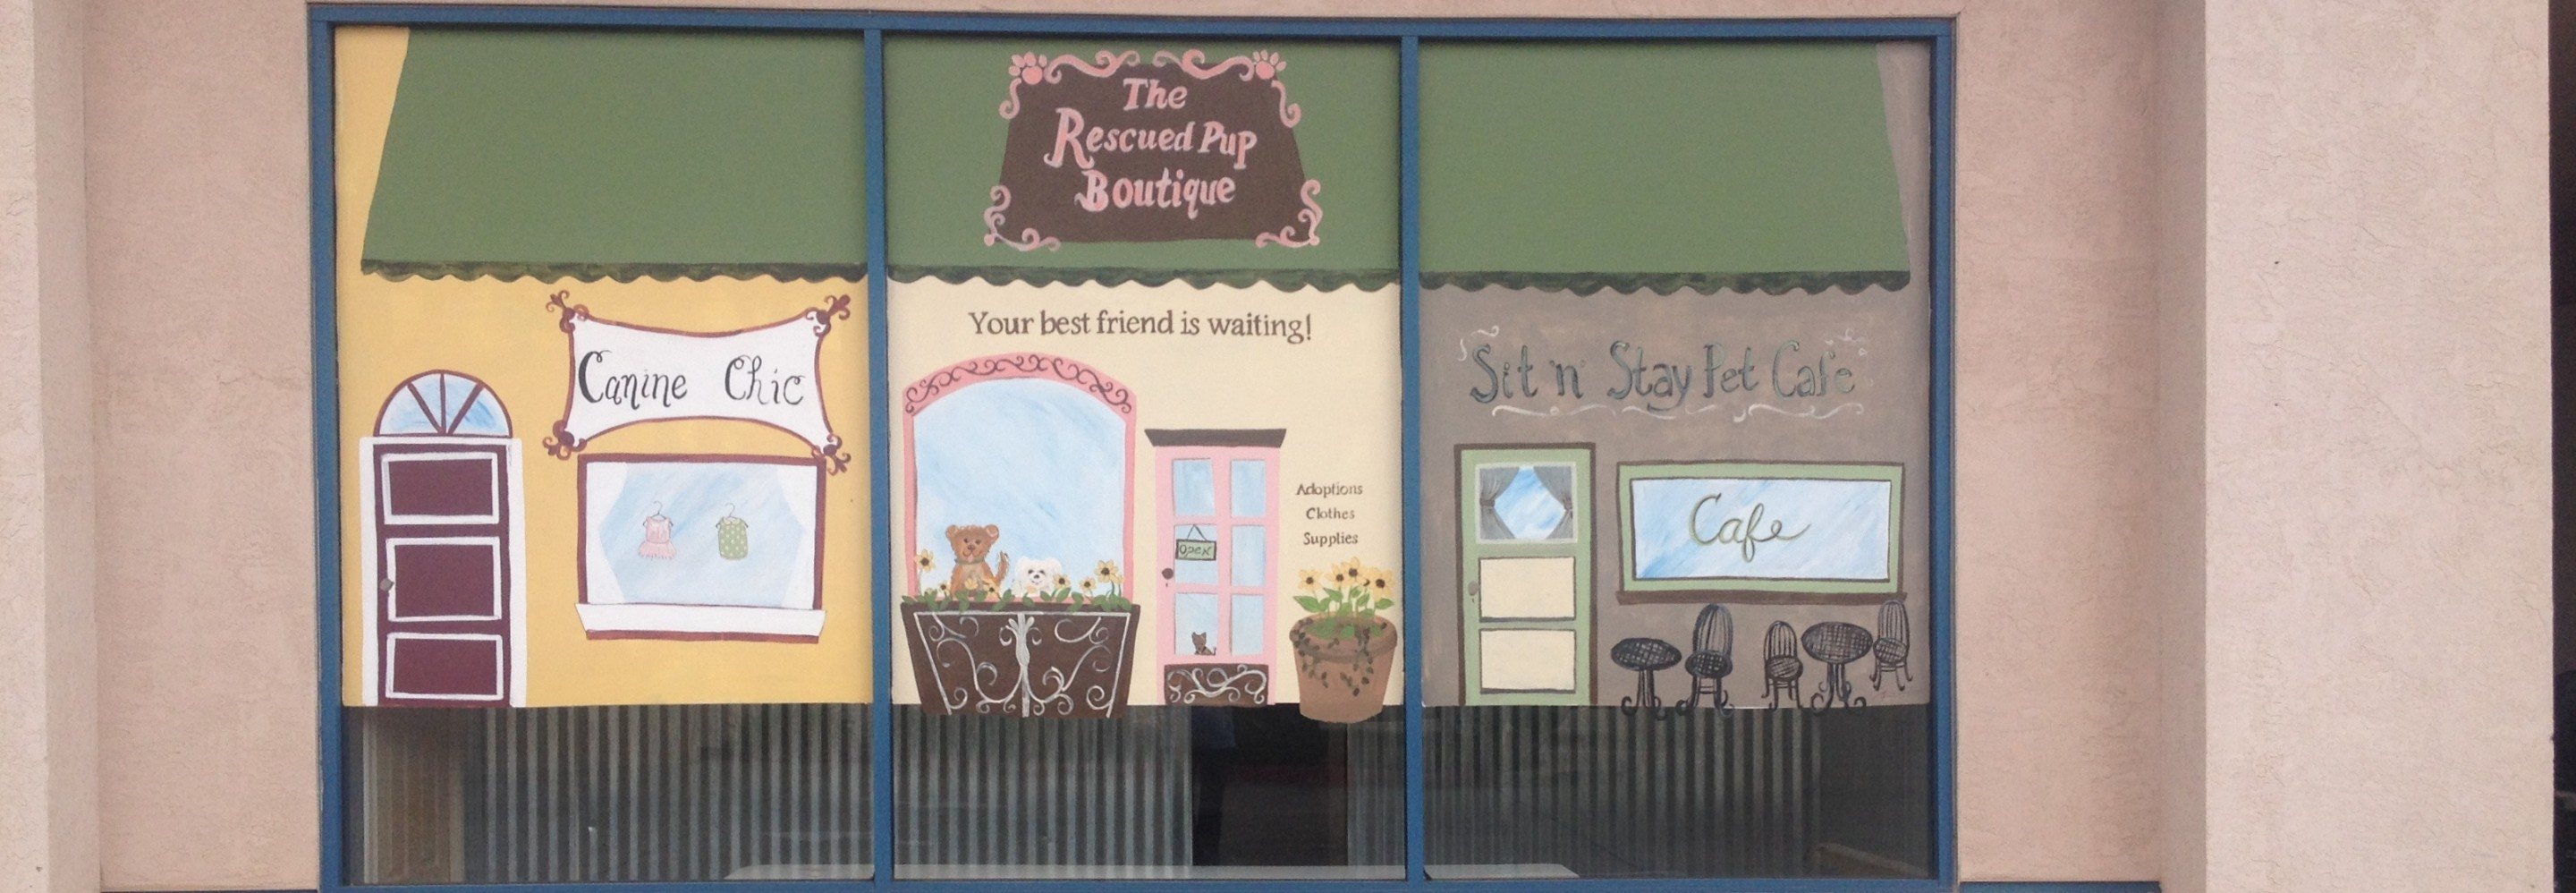 The Rescued Pup Boutique